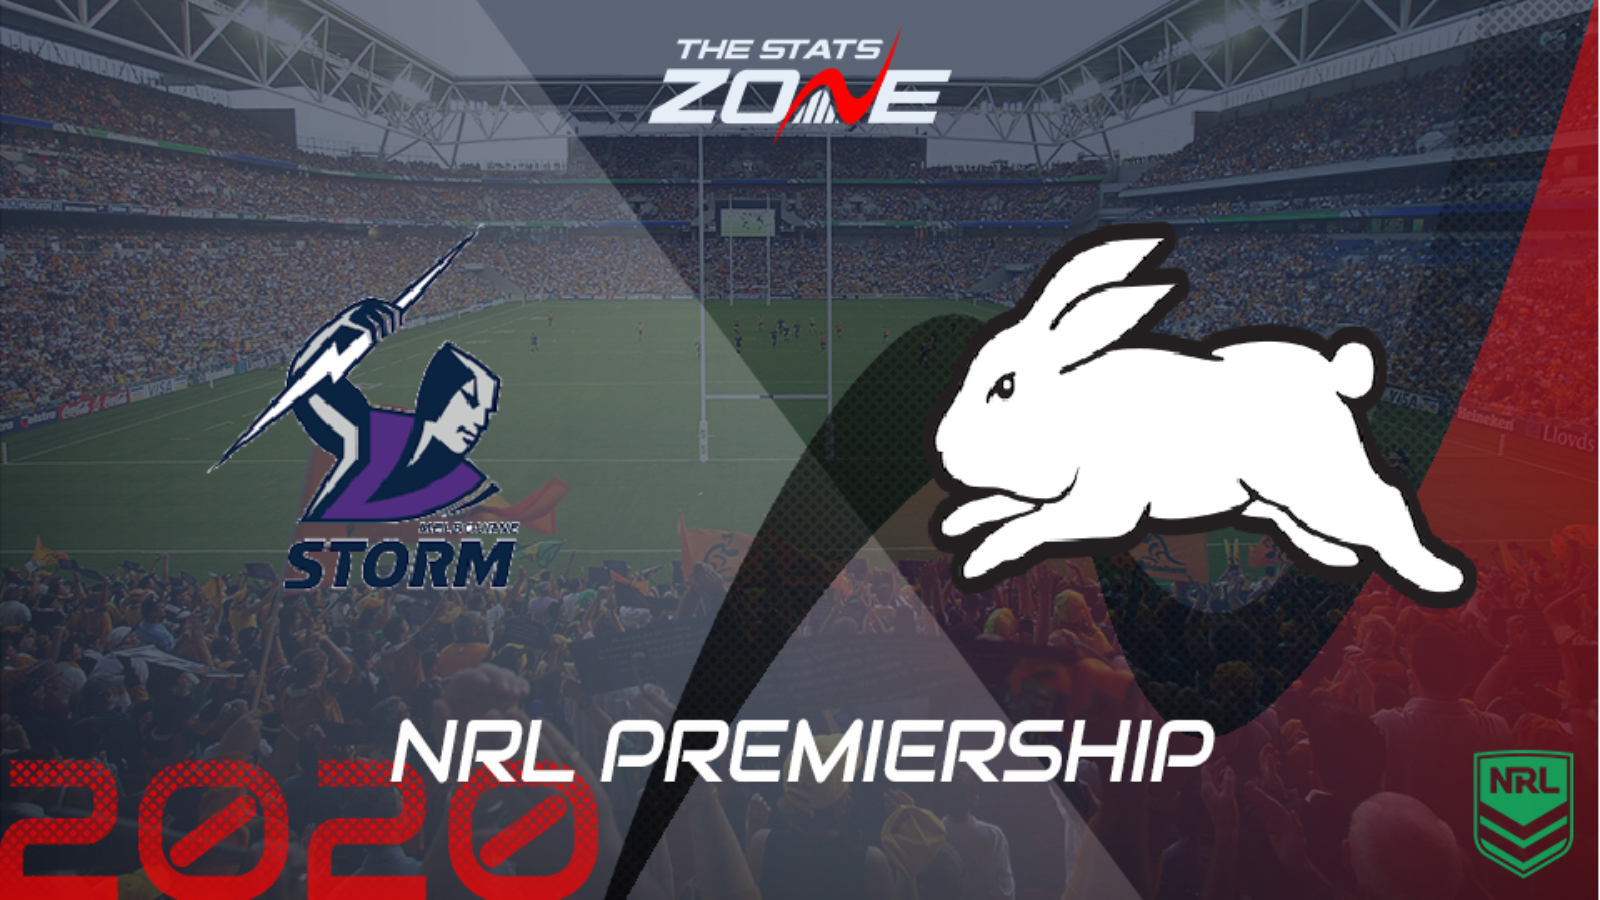 2020 Nrl Melbourne Storm Vs South Sydney Rabbitohs Preview Prediction The Stats Zone